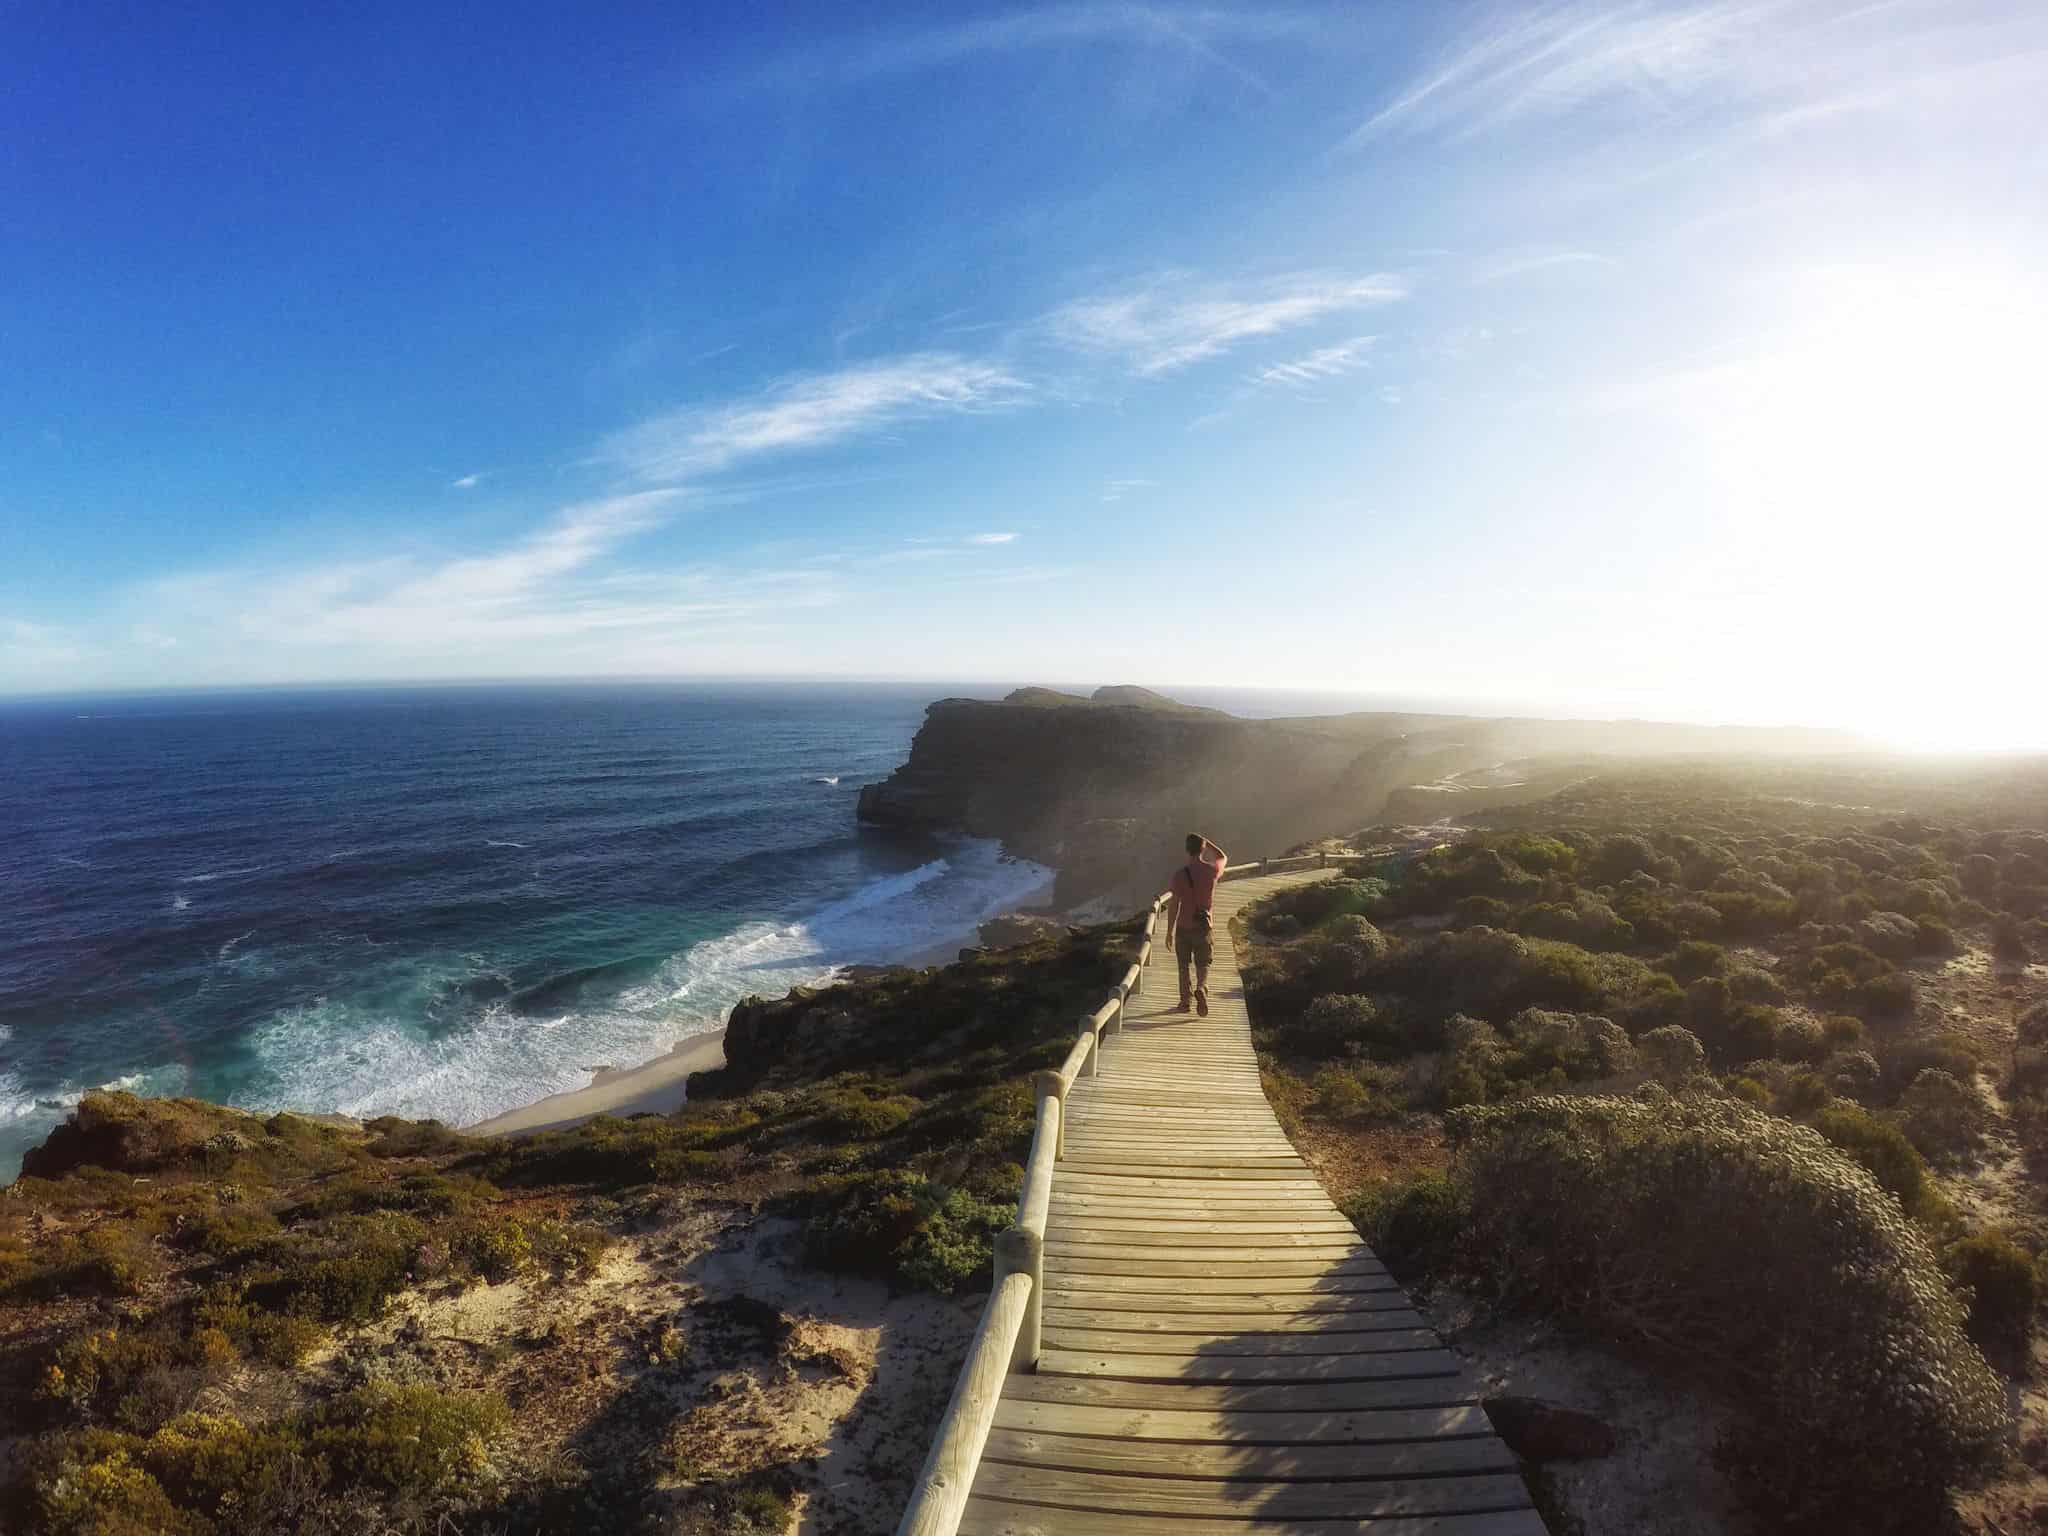 The view from Cape Point, South Africa.